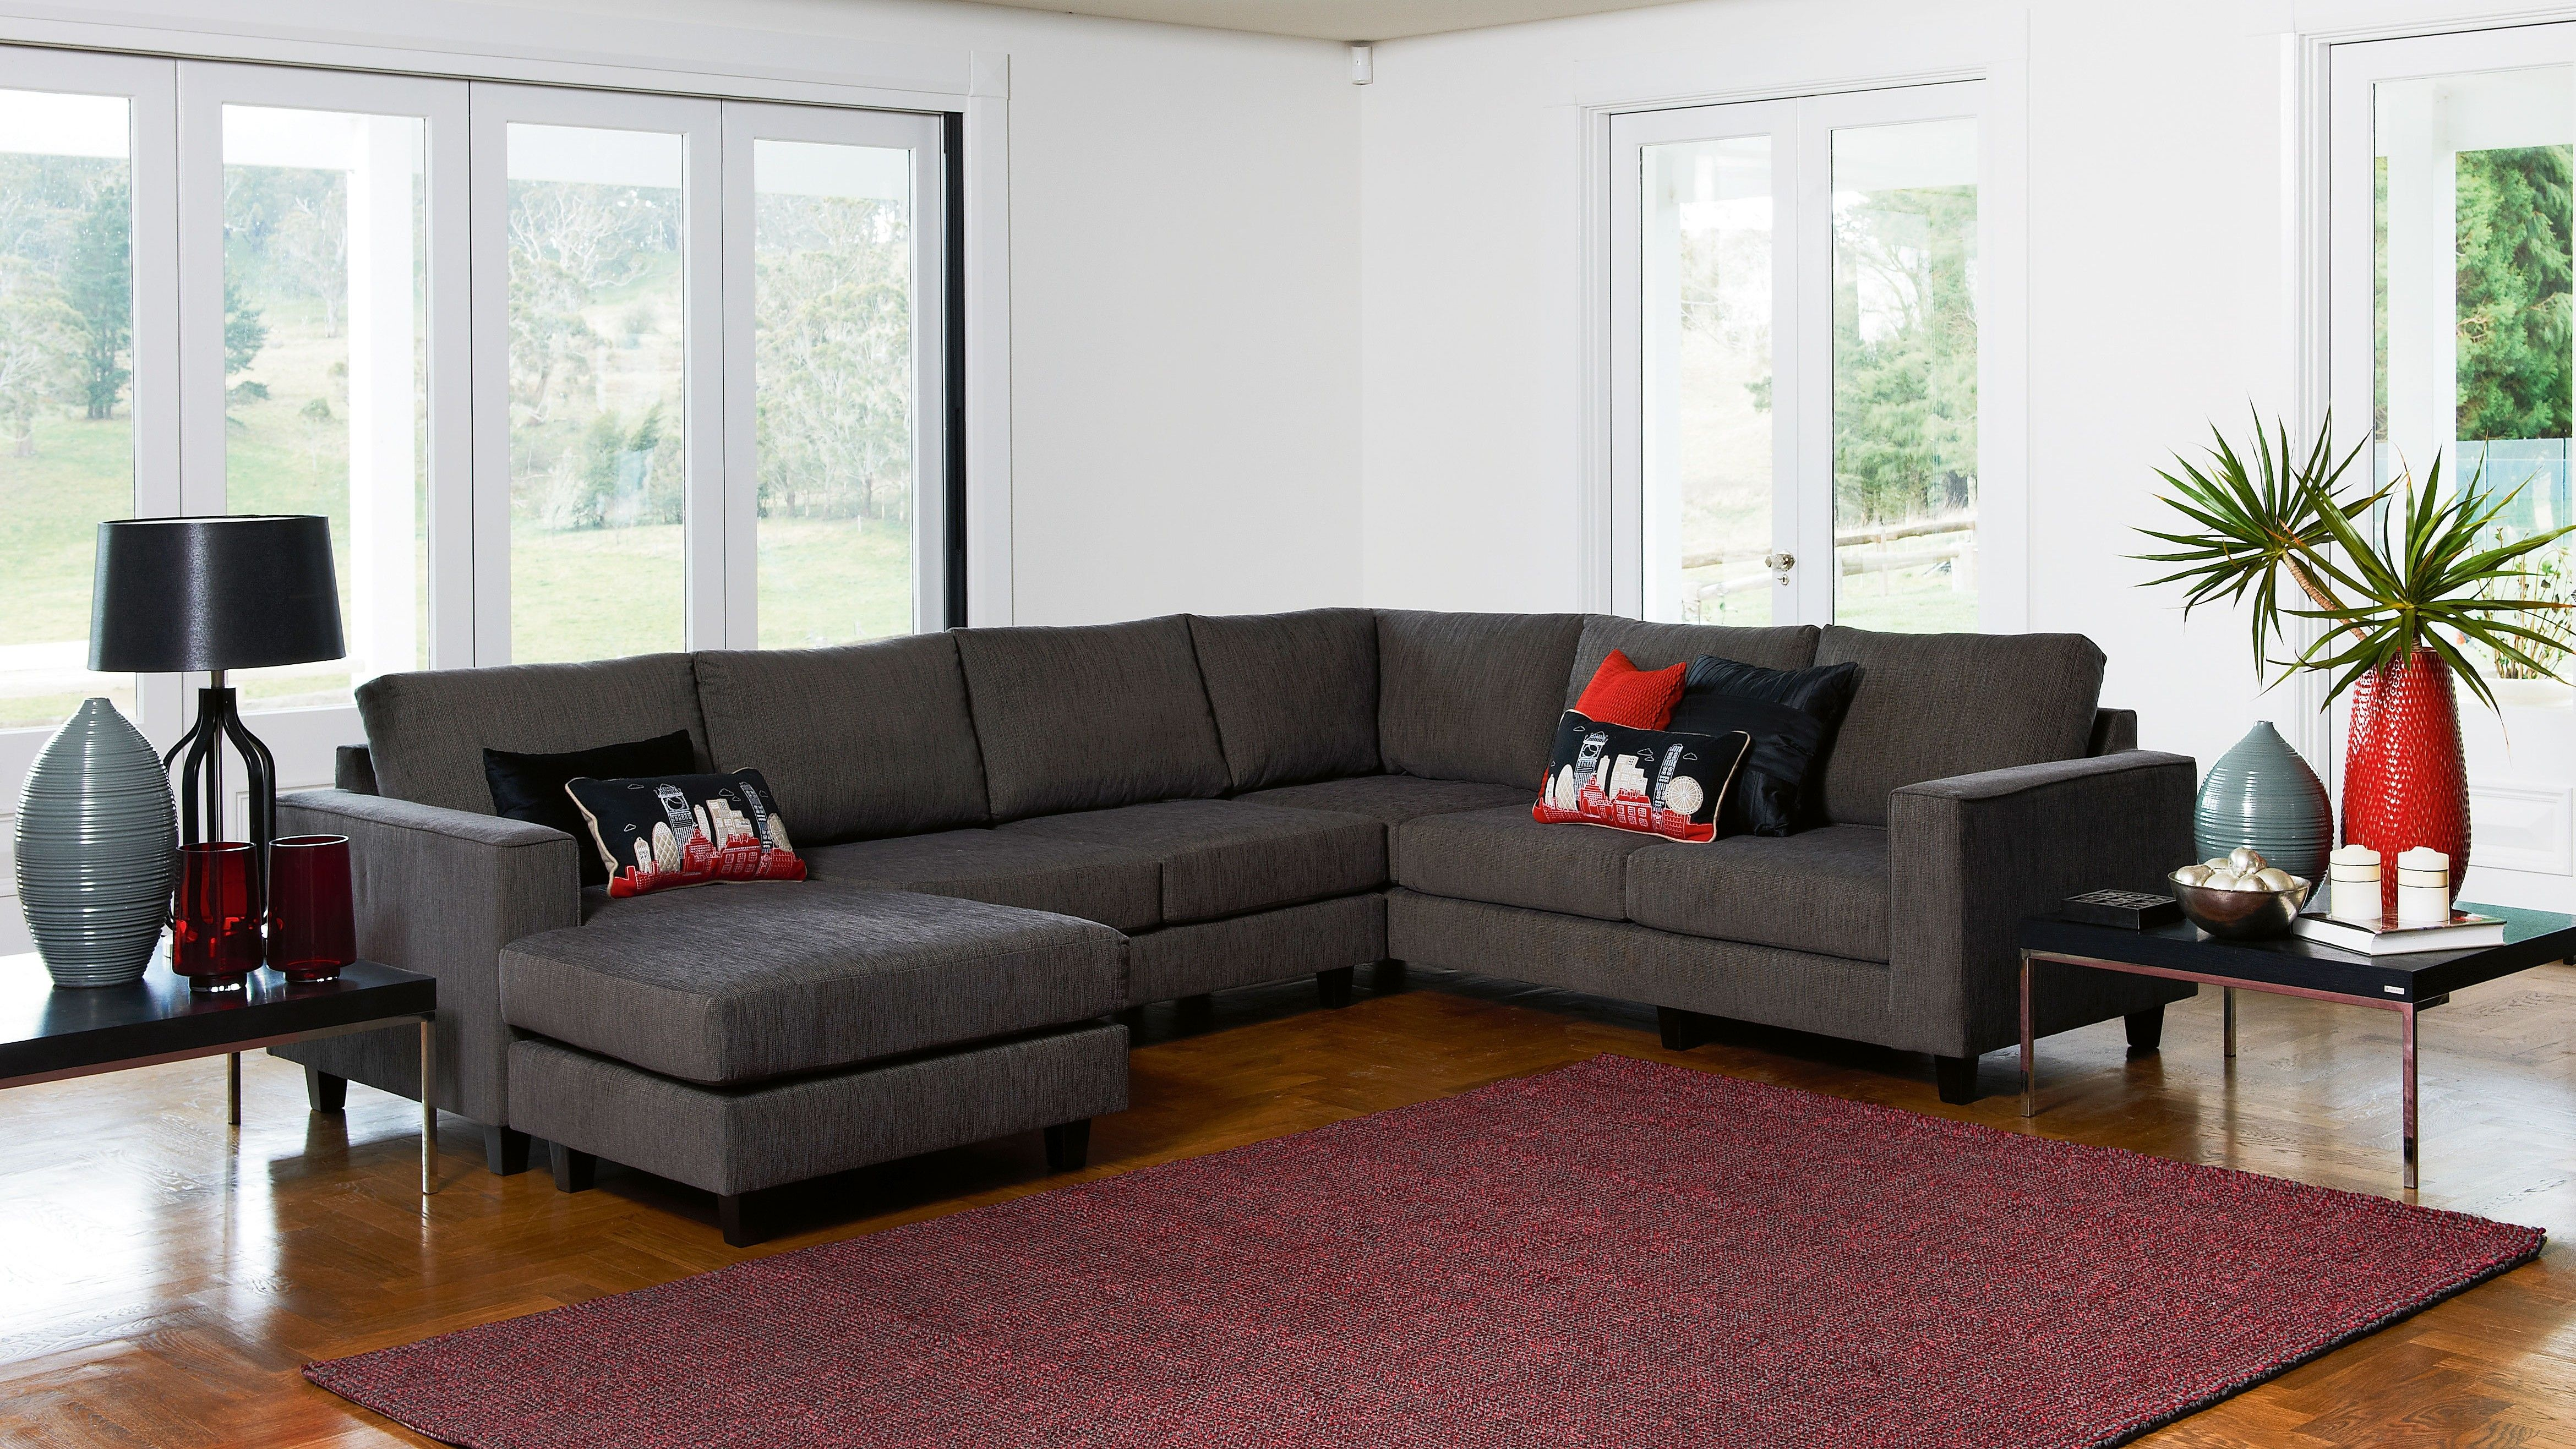 Yarra Corner Modular Lounge Suite with Chaise My new lounge is